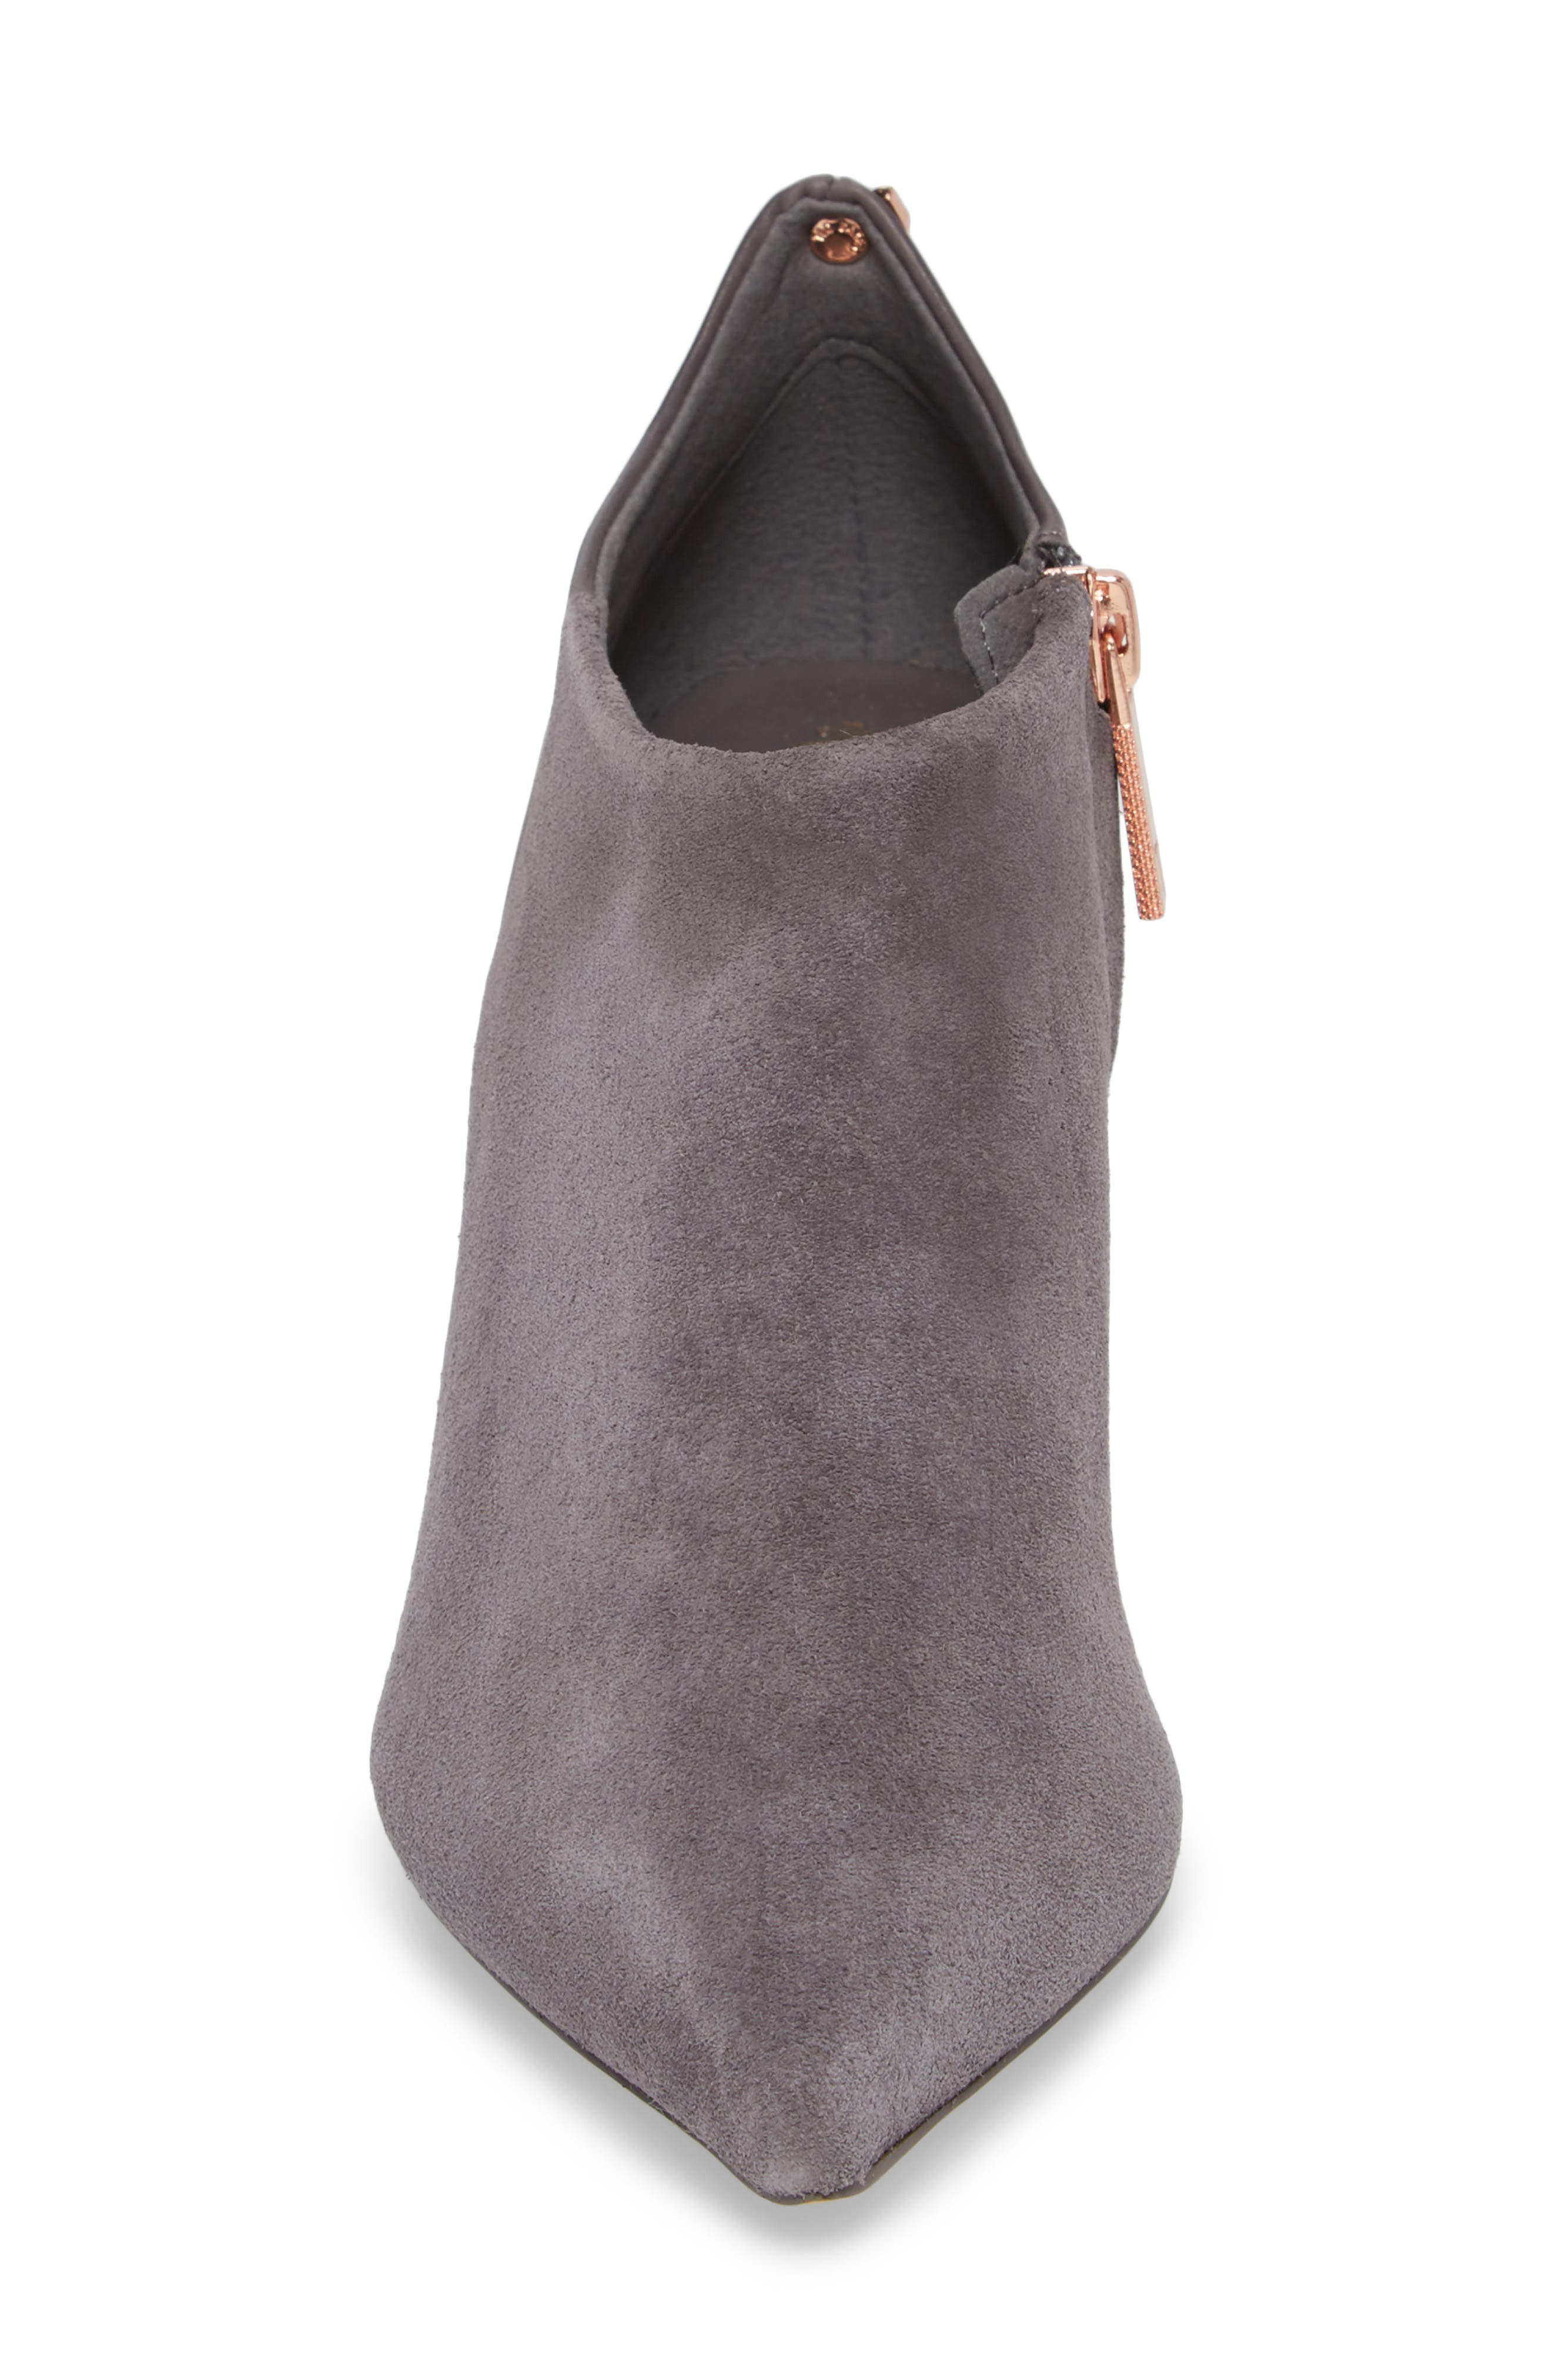 Akasher Bootie,                             Alternate thumbnail 4, color,                             Grey Suede